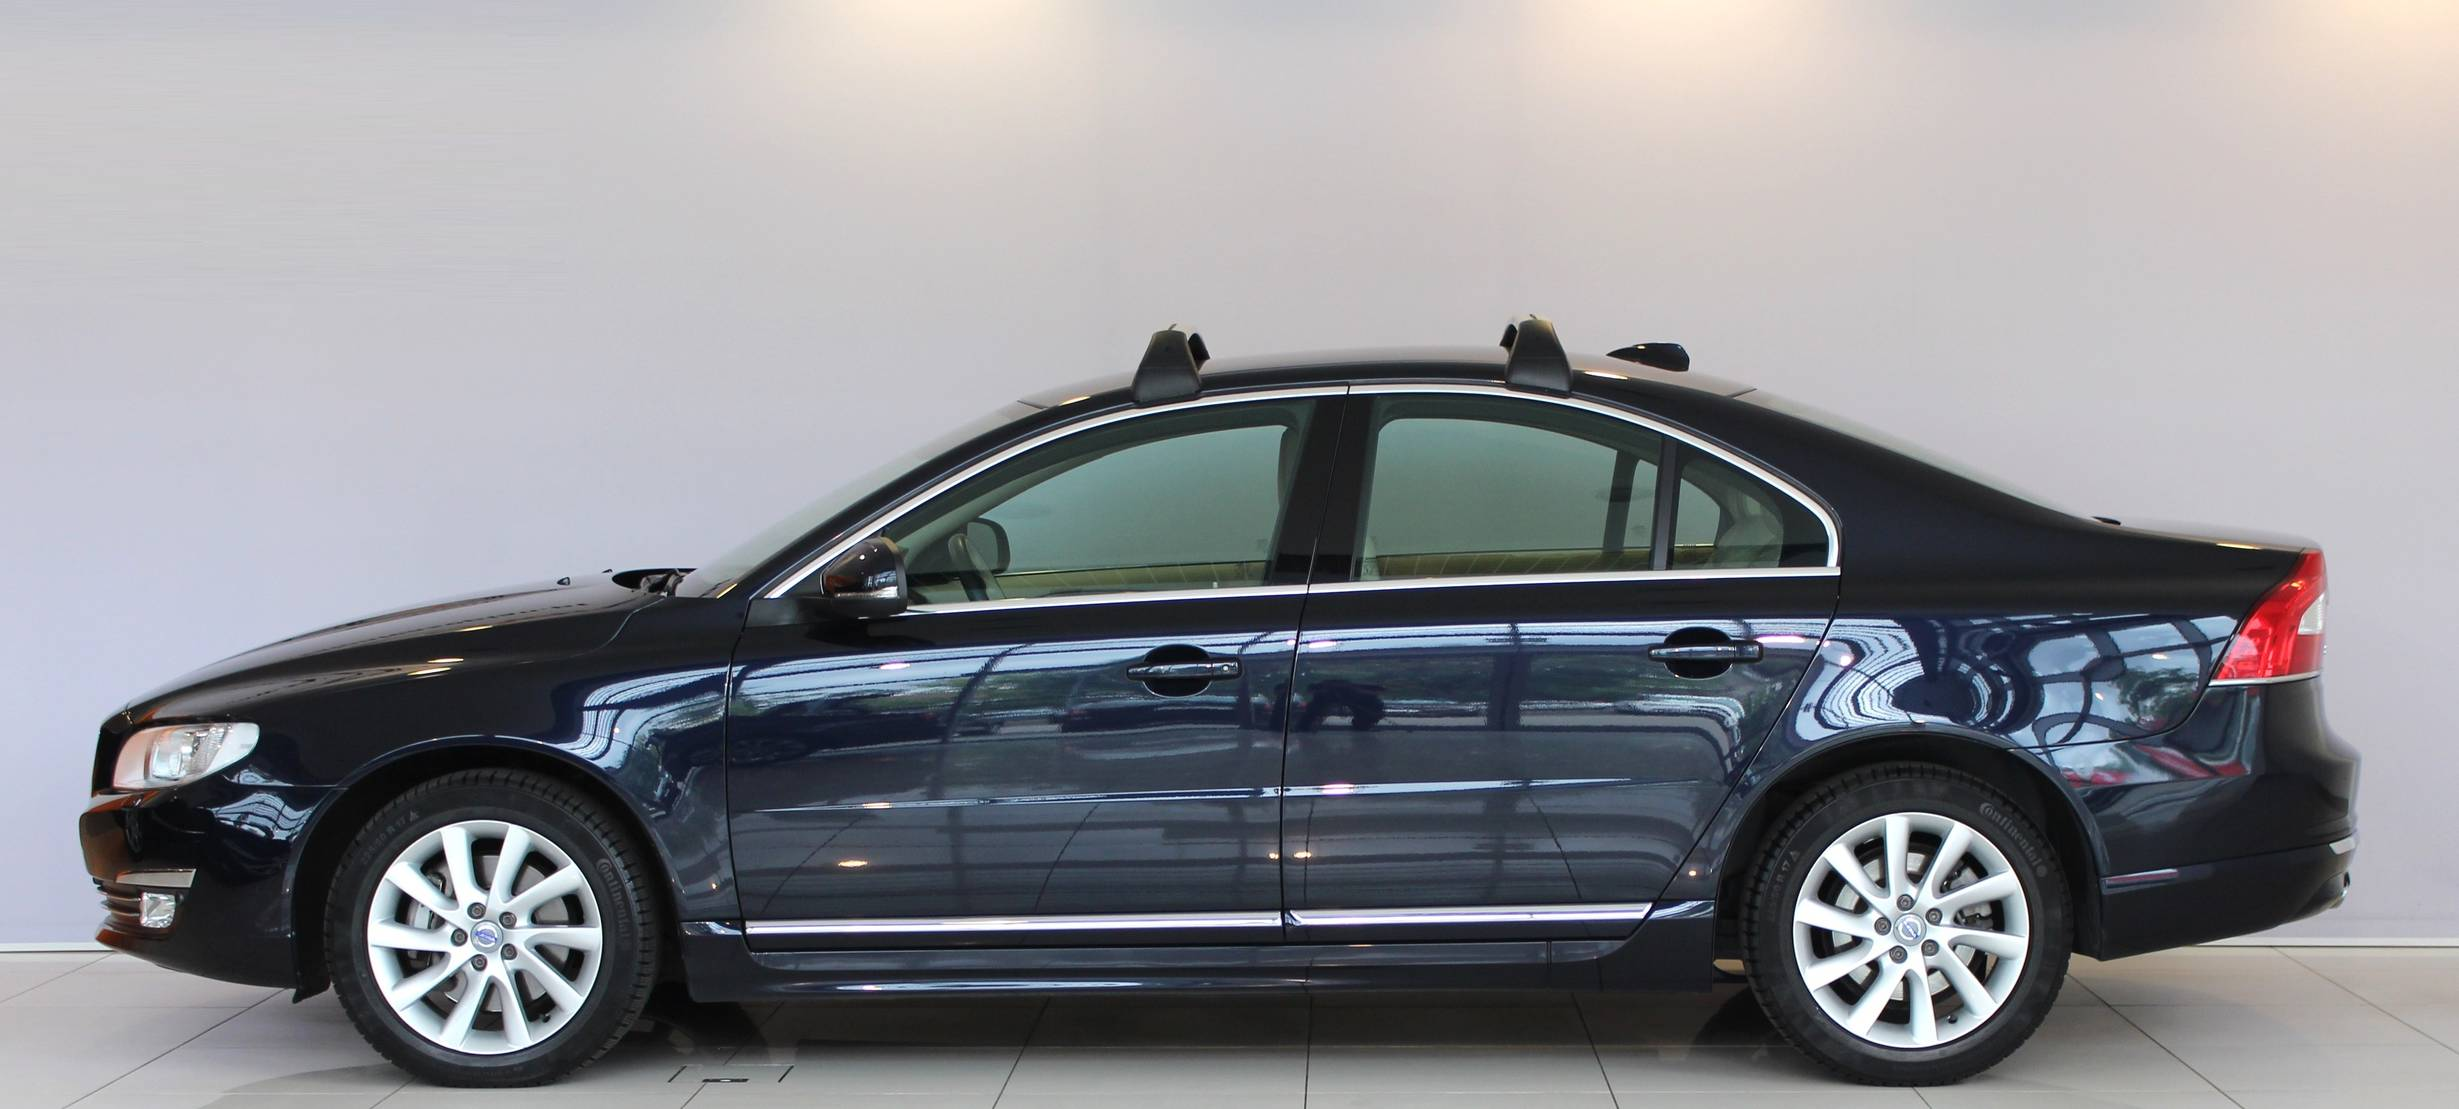 Volvo S80 T5 Geartronic, Summum detail2